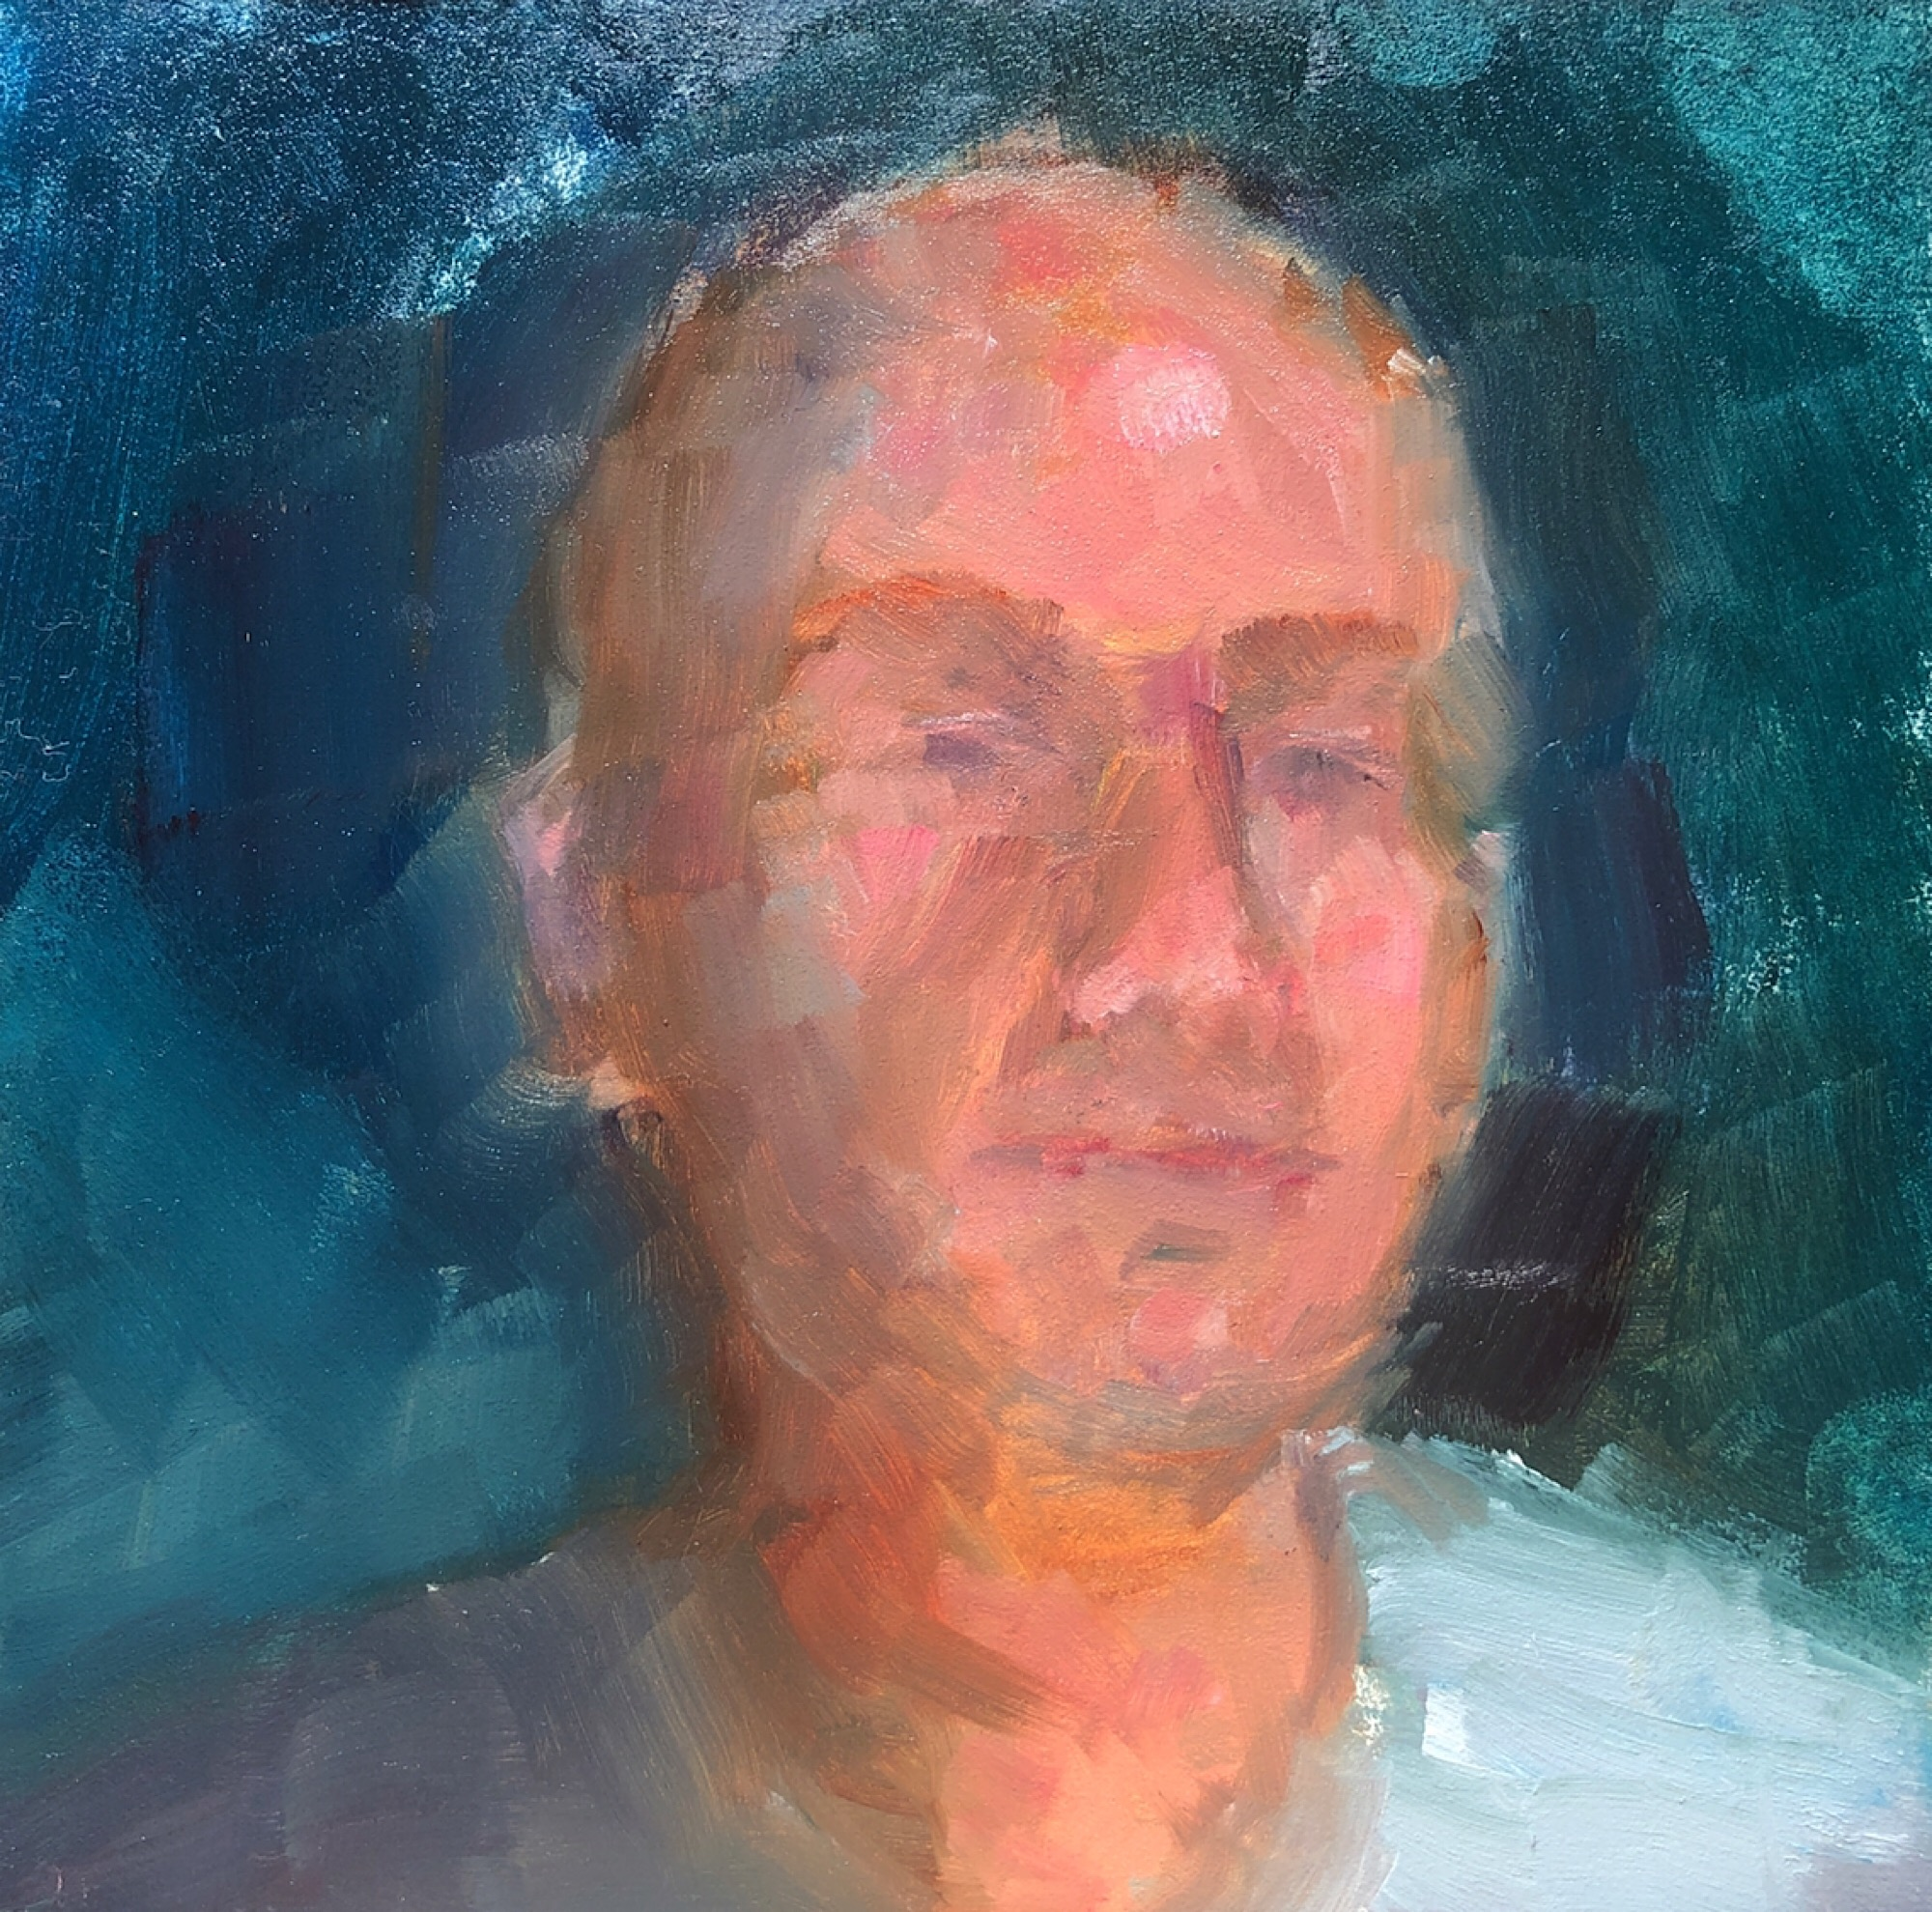 """Geoff Watson, """"Improved self-portrait (in progress),"""" May daily painting #25, study, oil on panel, 6"""" x 6,"""" 2019."""